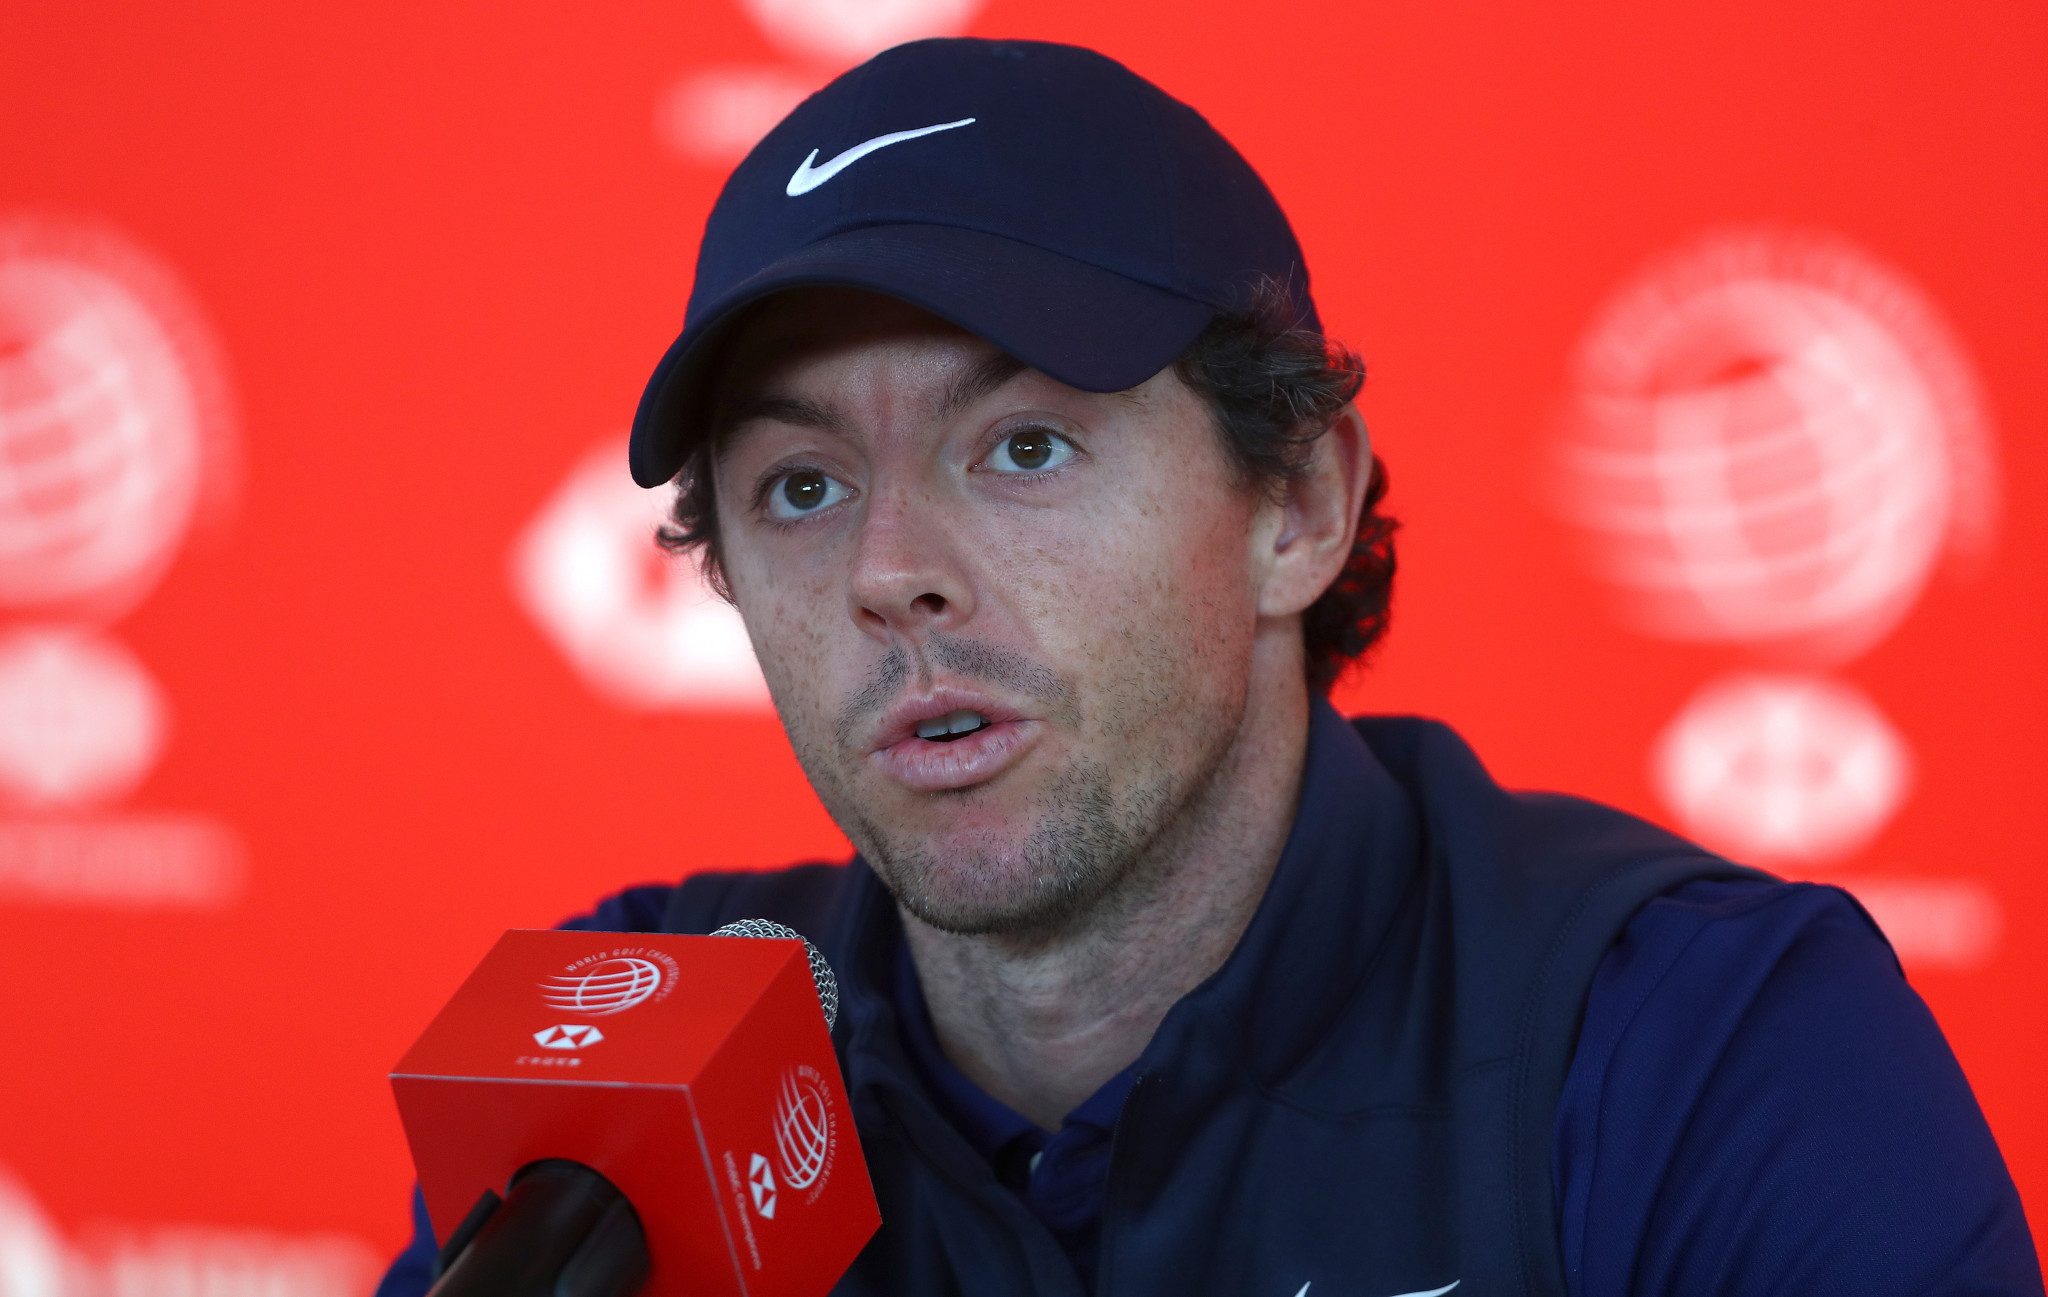 McIlroy strong favourite at WGC-HSBC Champions event